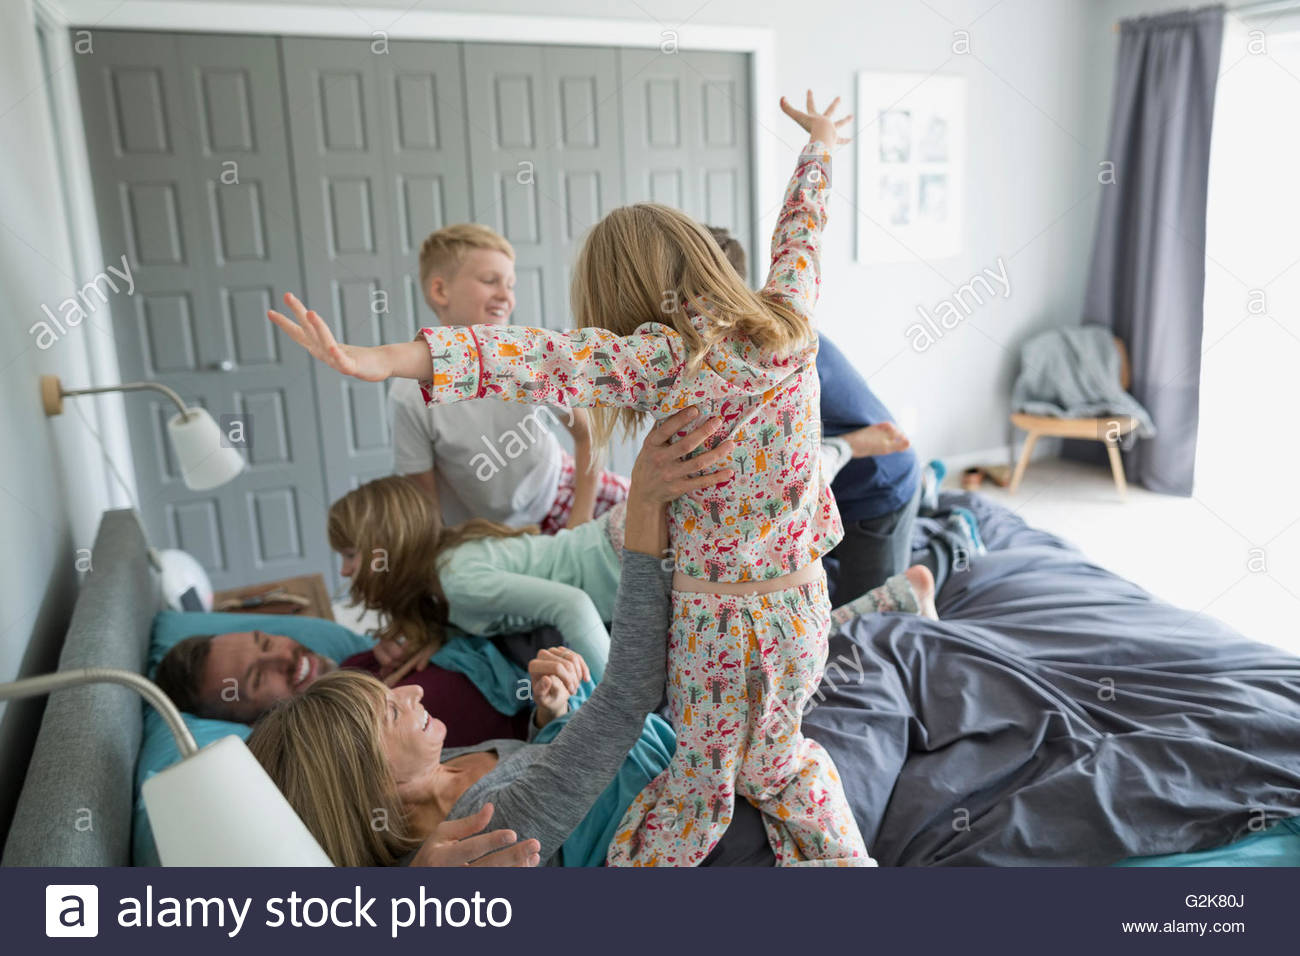 Enfants ludique en pyjama de sauter sur les parents au lit Photo Stock